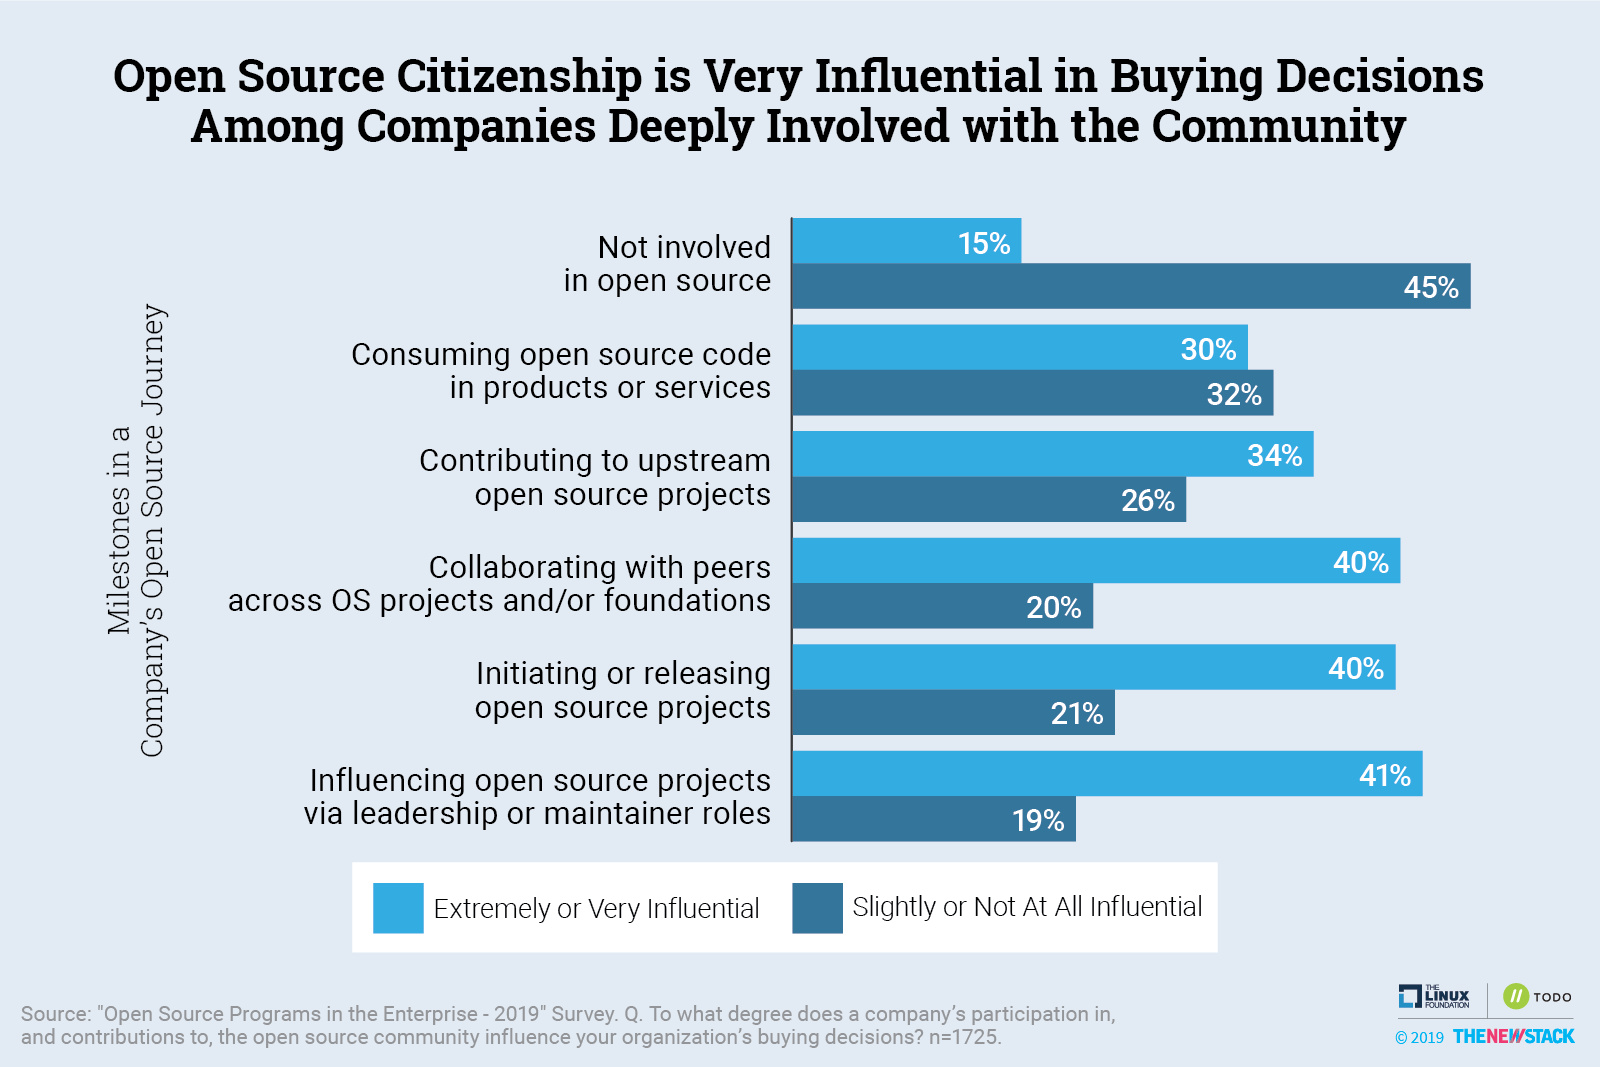 Open Source Citizenship is Very Influential in Buying Decisions Among Companies Deeply Involved with the Community